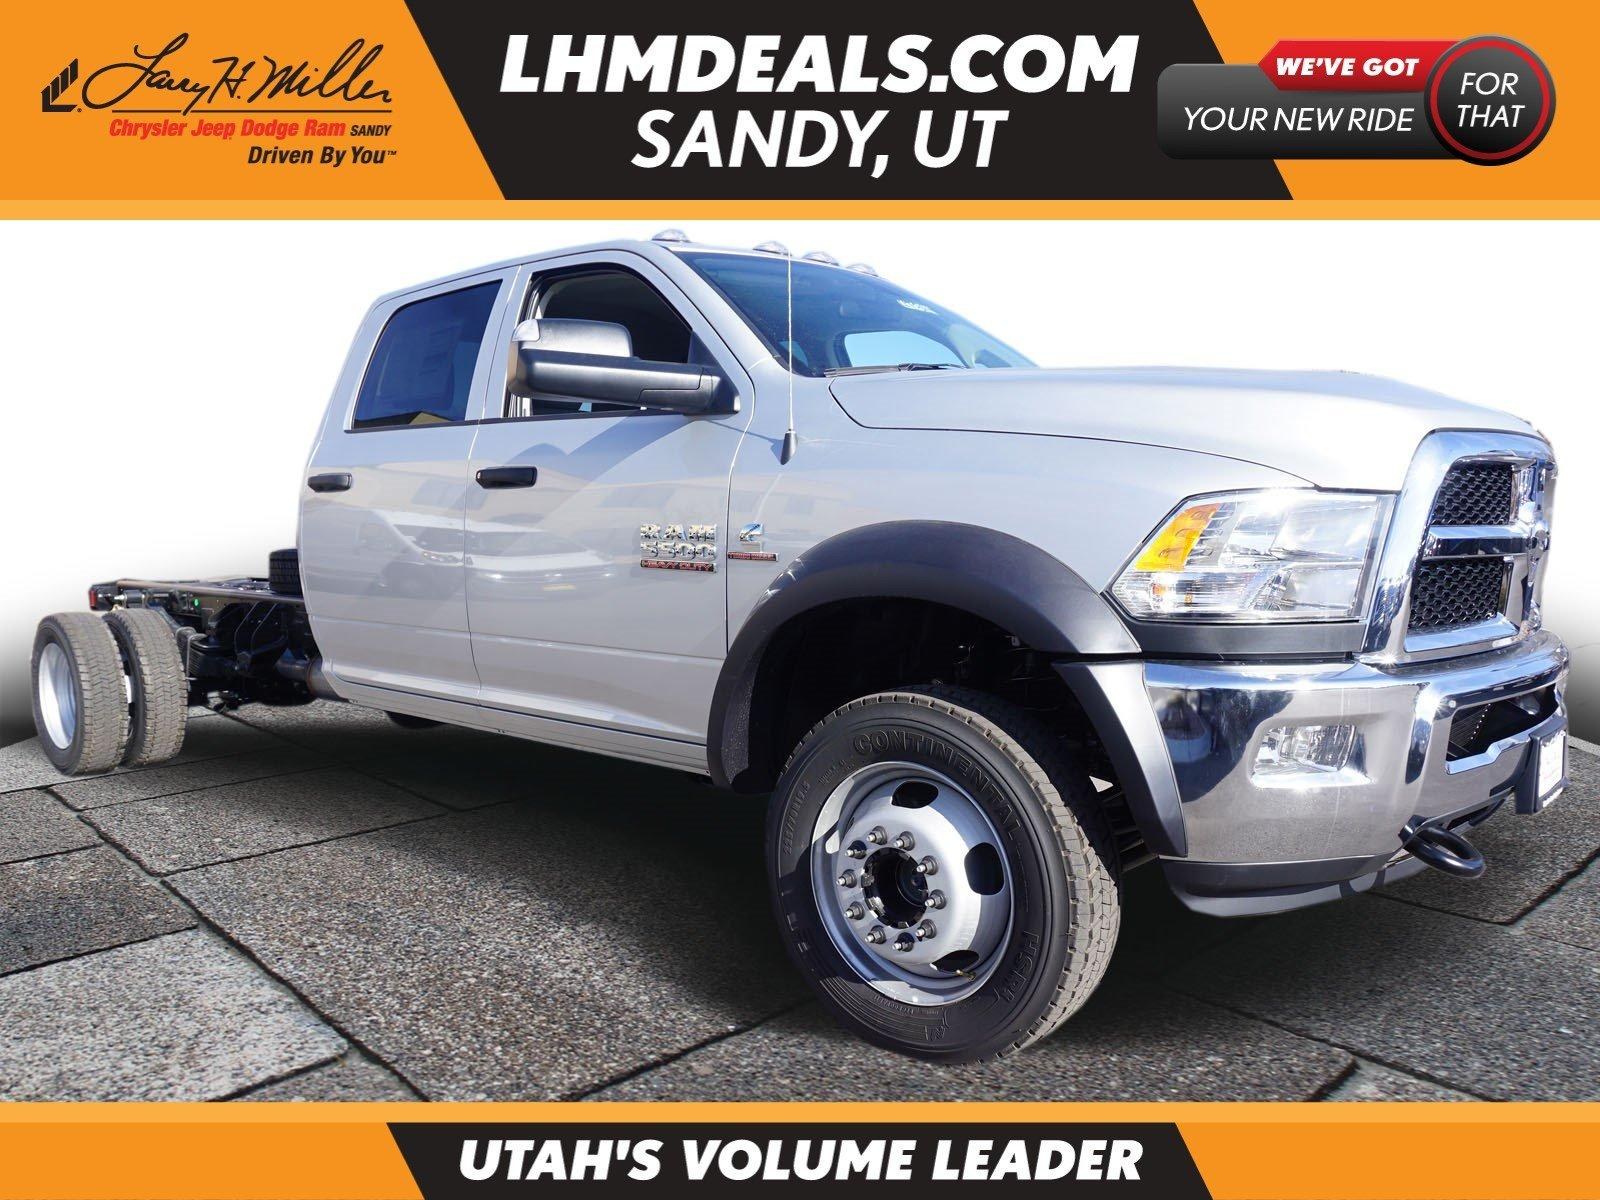 Ram 5500 Chassis Cab TRADESMAN CHASSIS CREW CAB 4X4 197.4 WB 2018